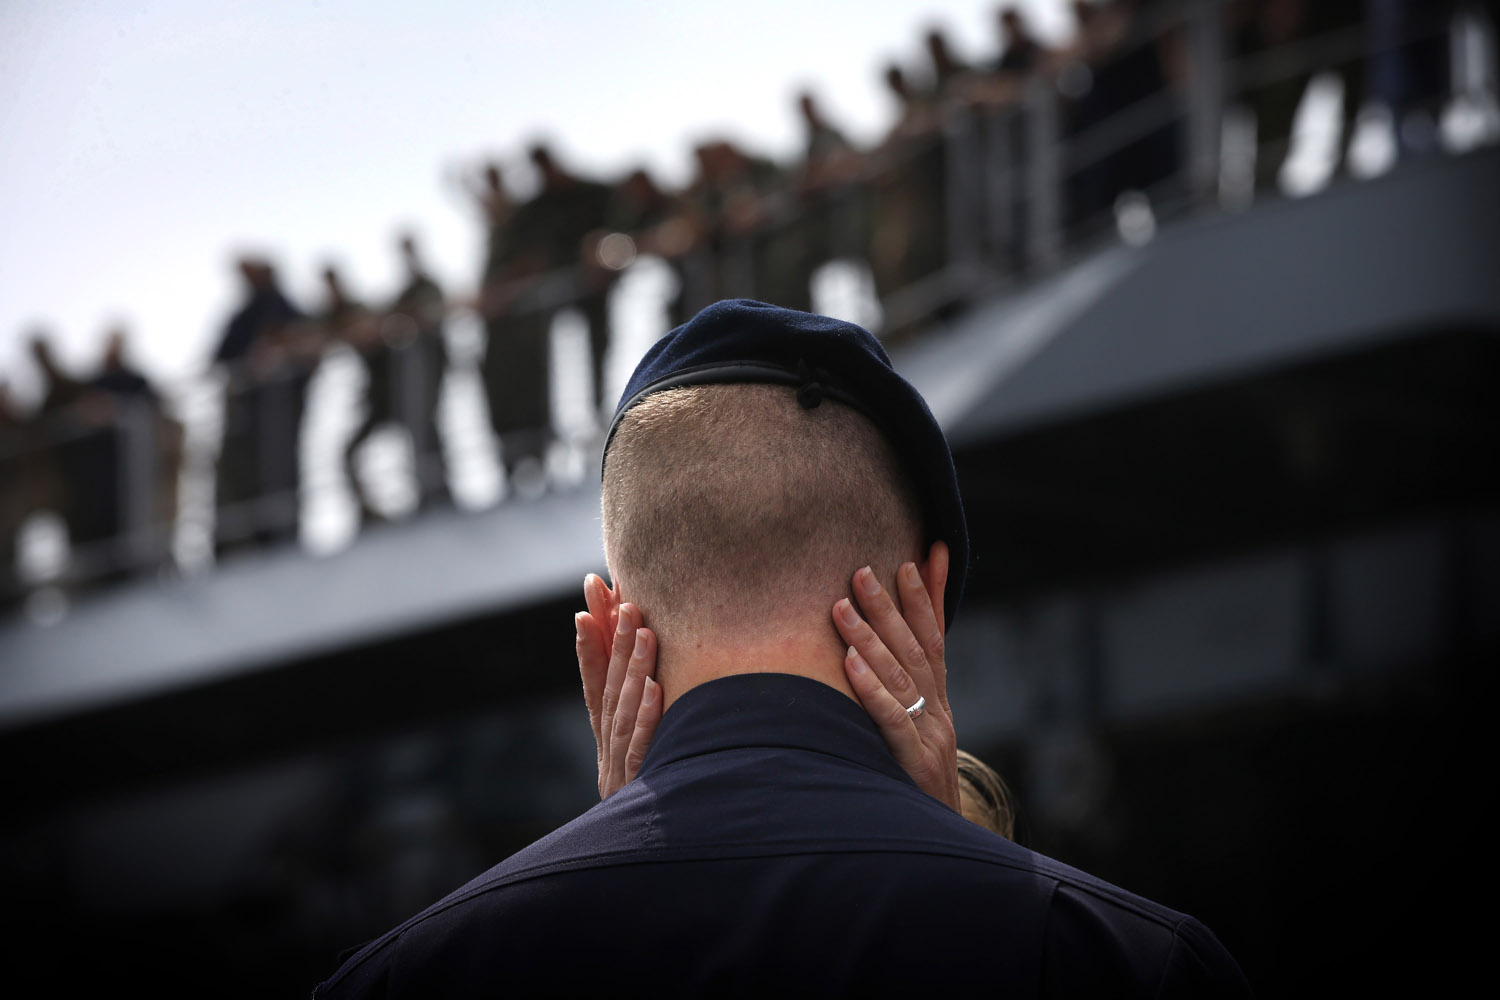 July 14, 2013. A member of the Zr. Ms. Johan de Witt Dutch navy warship says goodbye on to a loved one on the quayside in Den Helder, Netherlands.